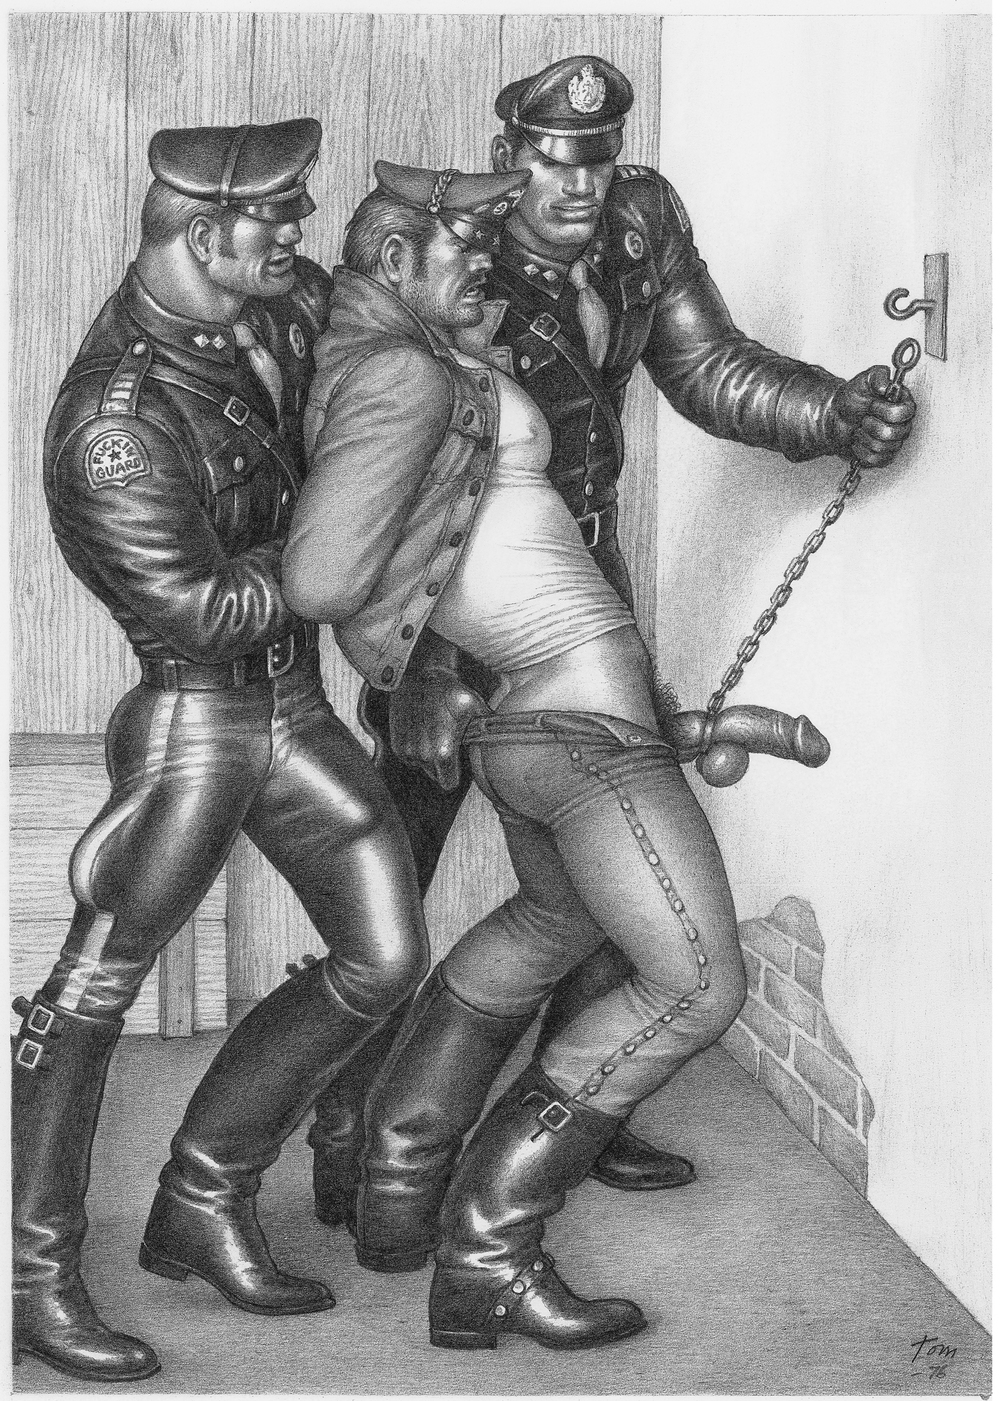 Tom of Finland - UNTITLED ARREST